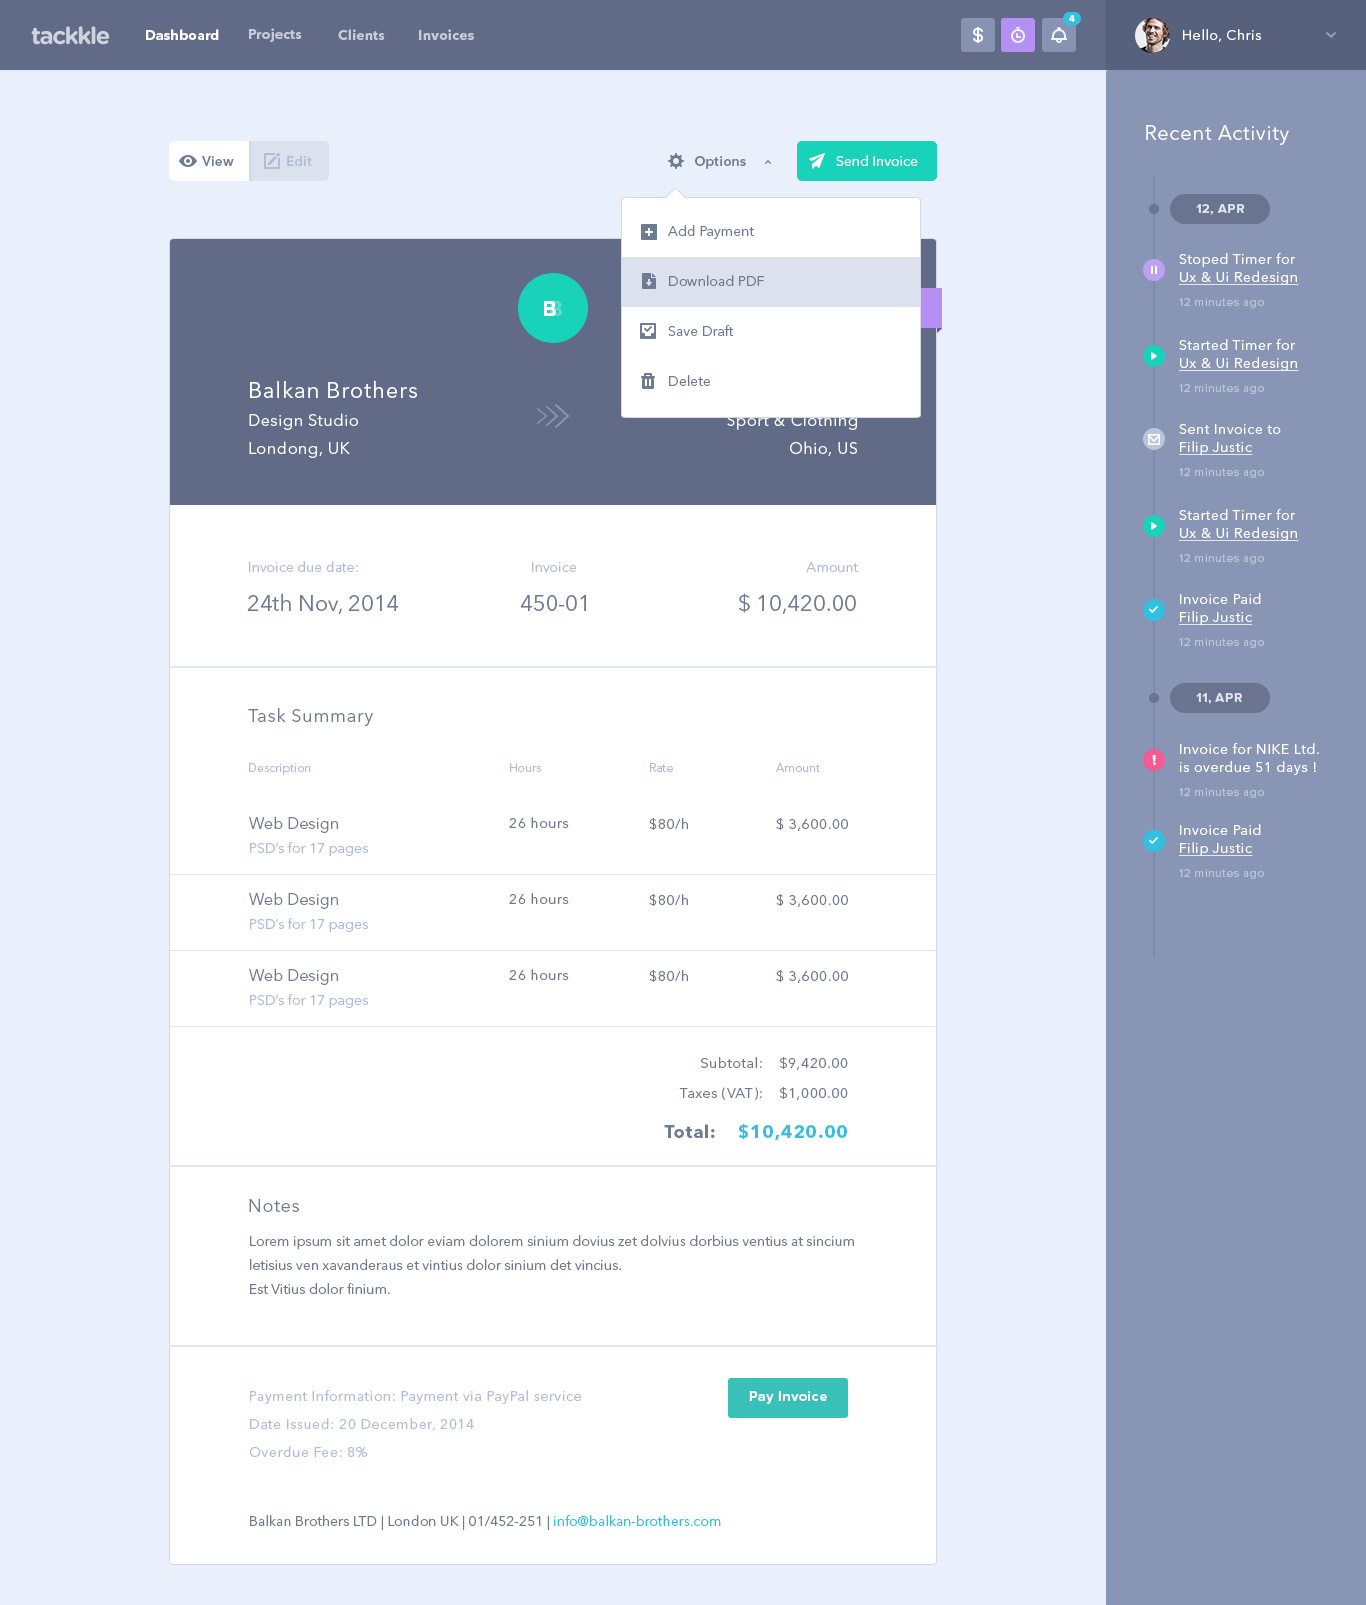 Invoice Templates Drafts App Design Dashboard Design